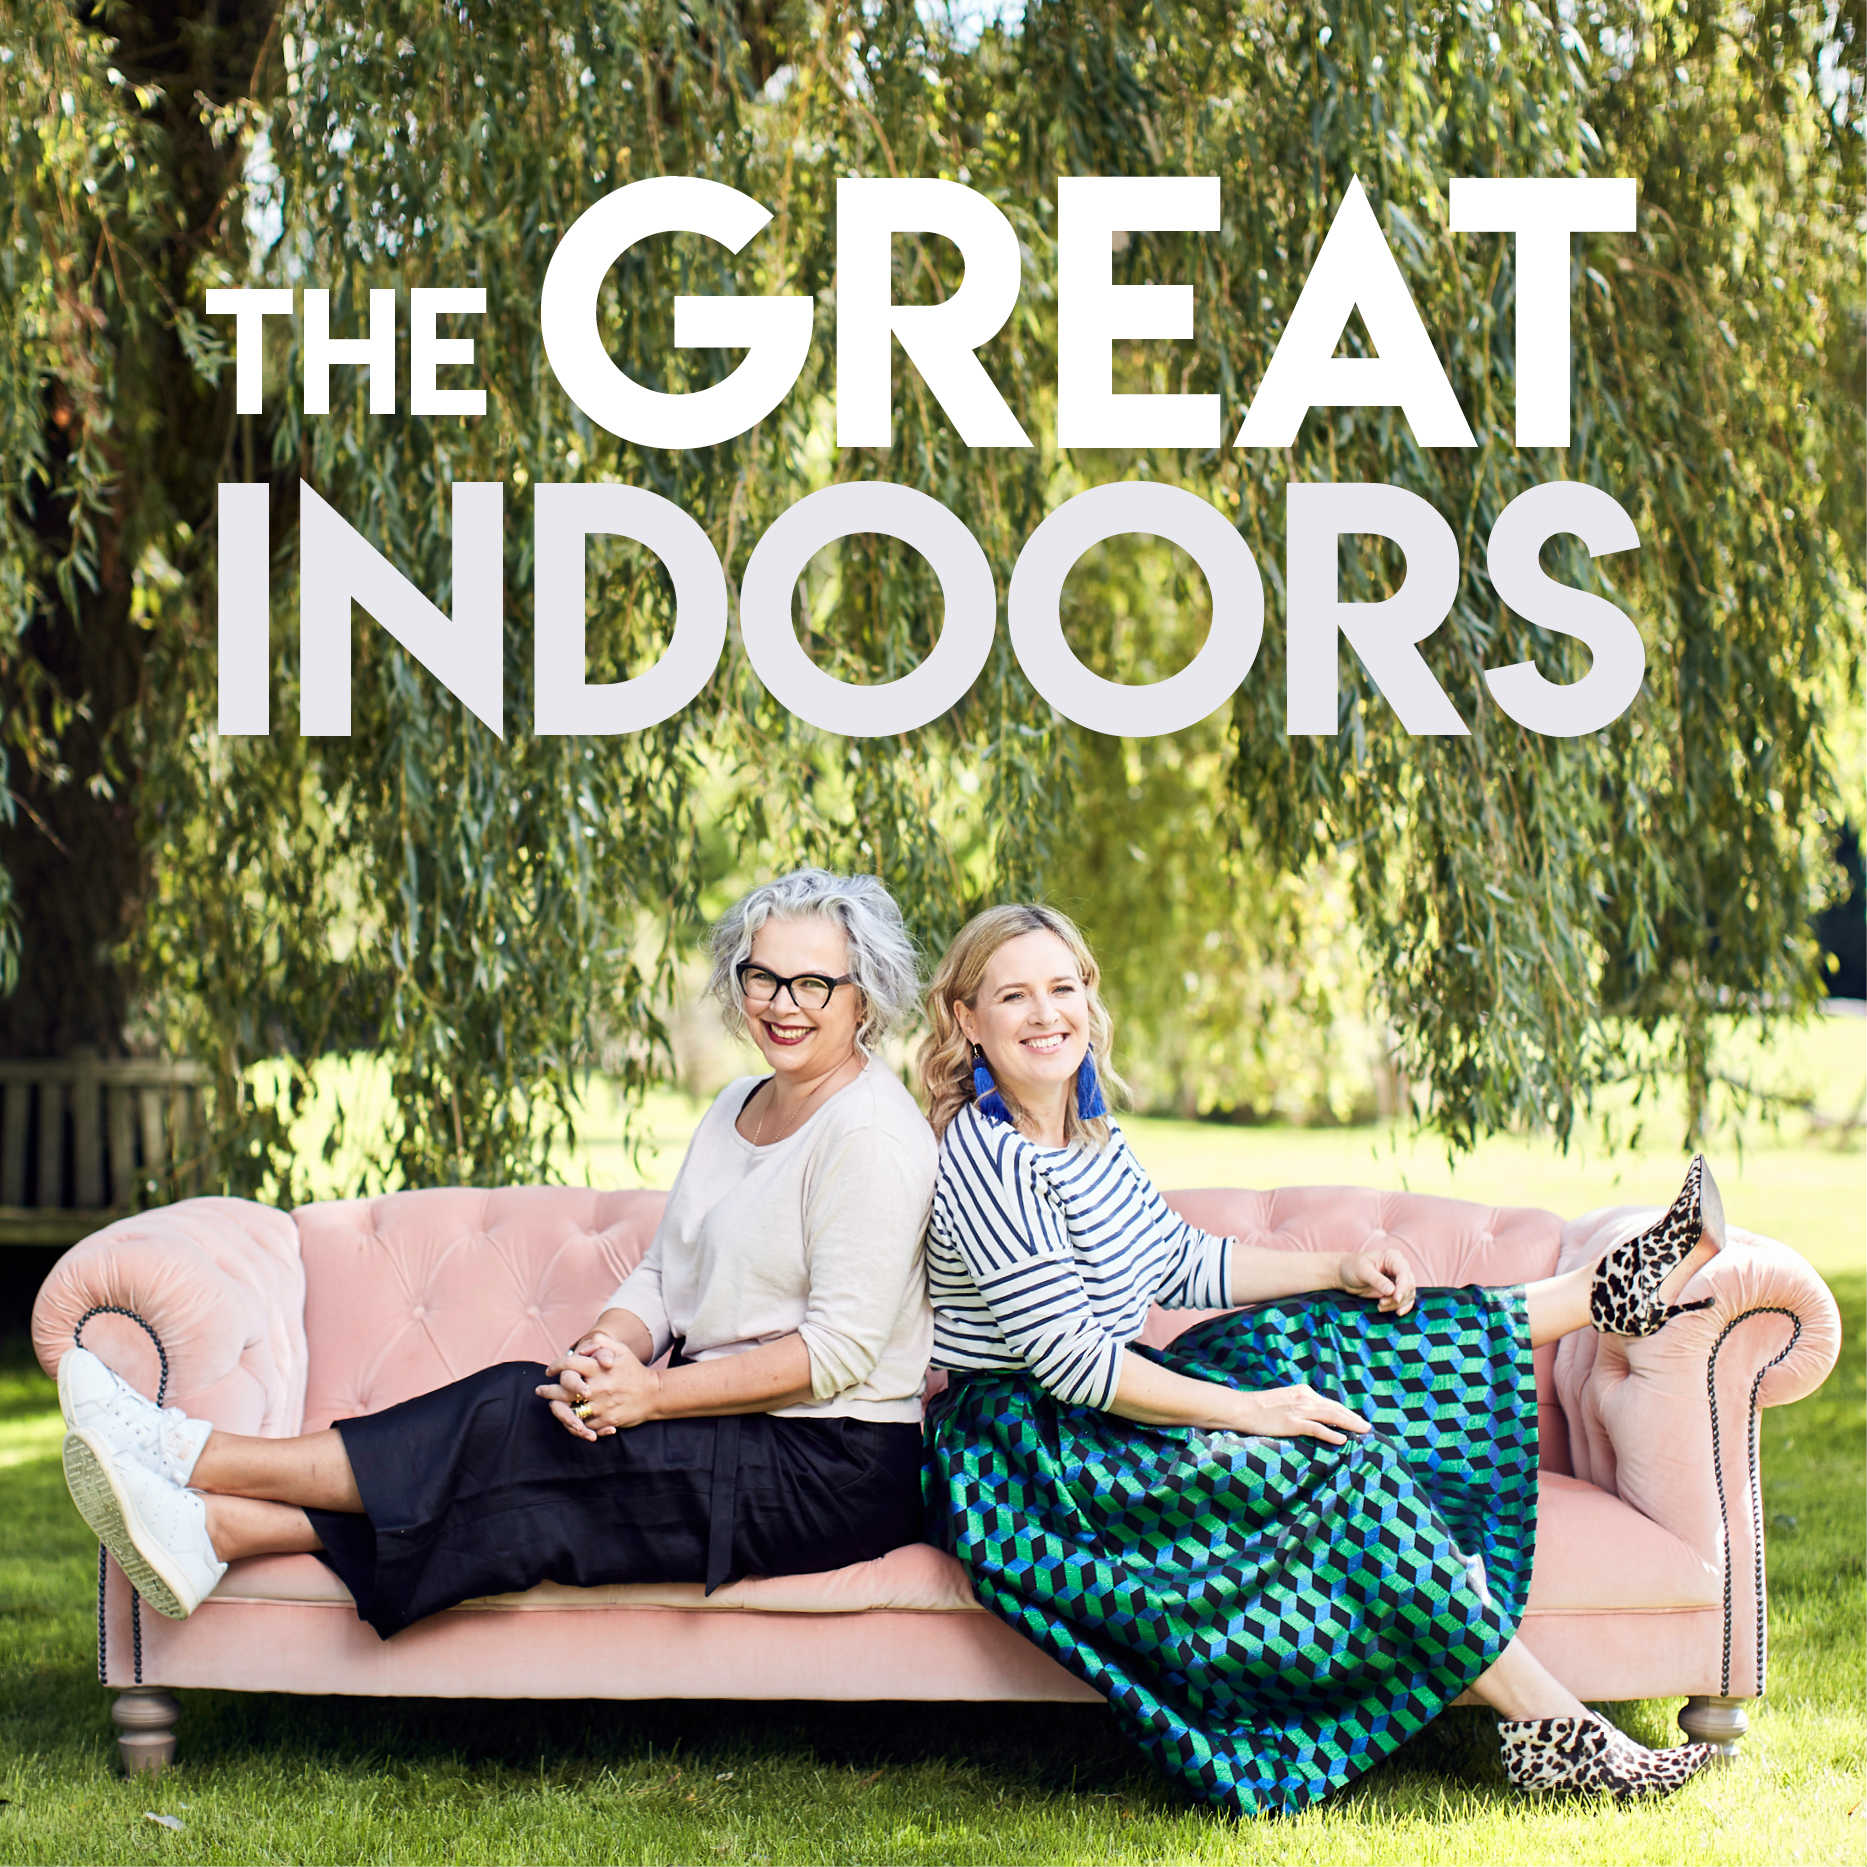 The Great Indoors show art